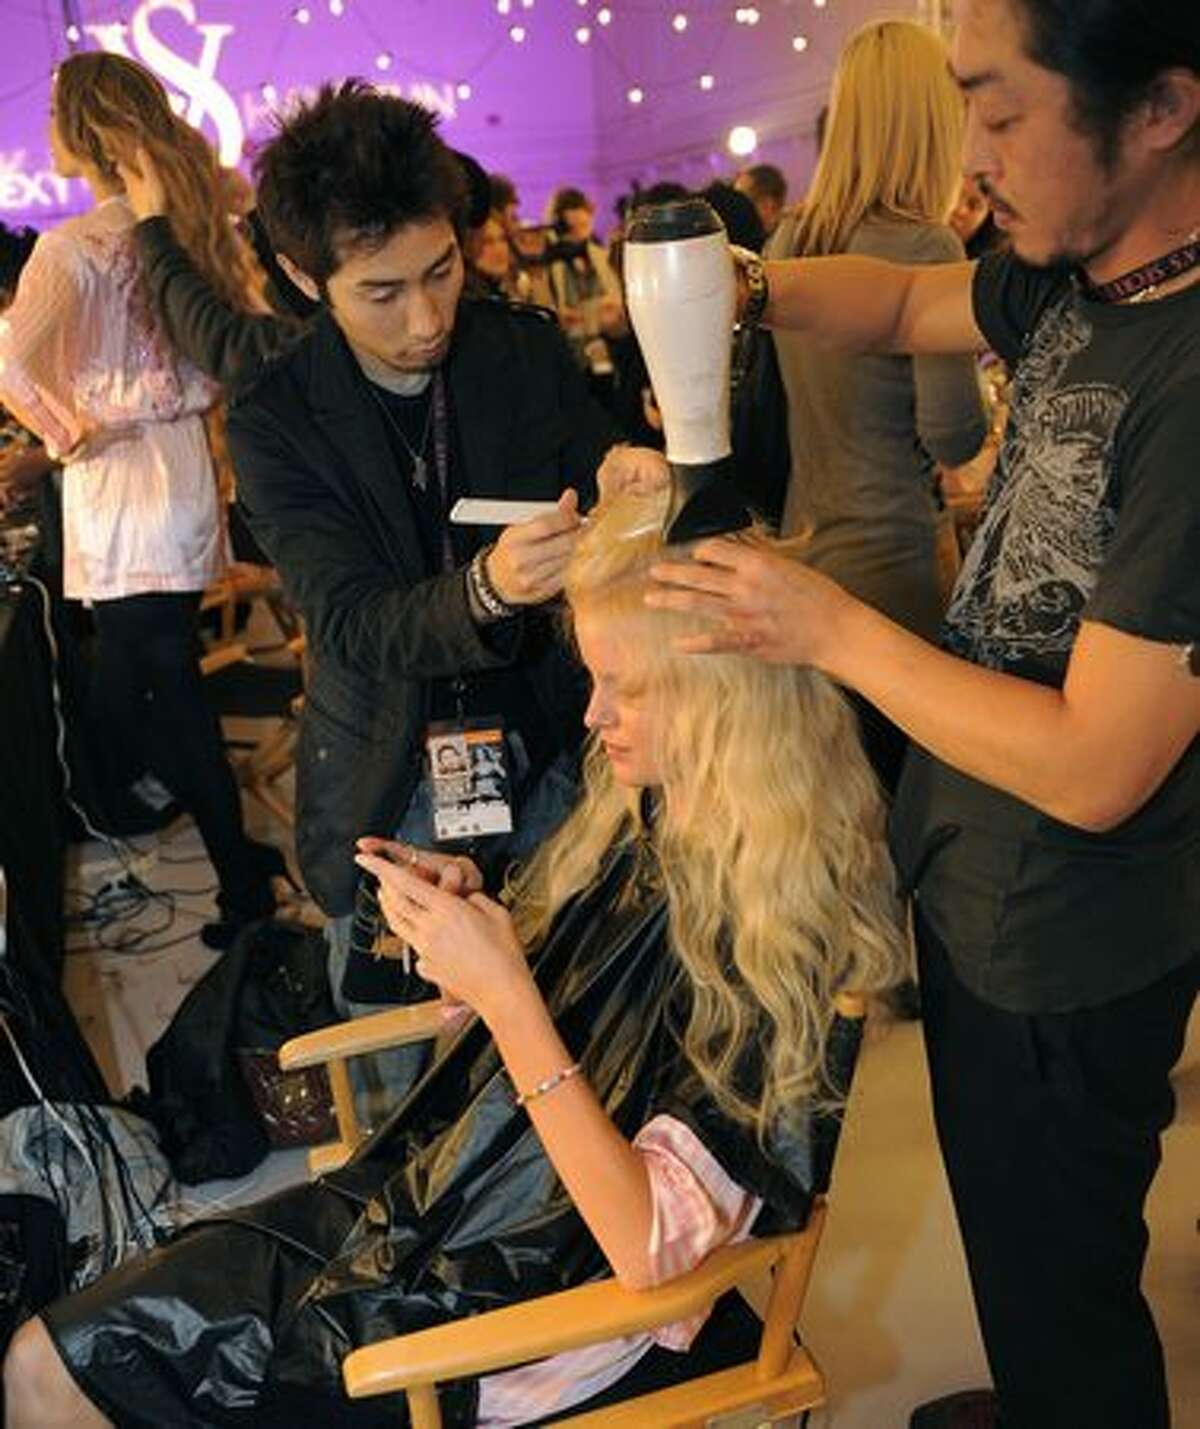 Victoria's Secret model Caroline Winberg backstage in hair and make-up before the start of the Victoria's Secret Fashion Show in New York.